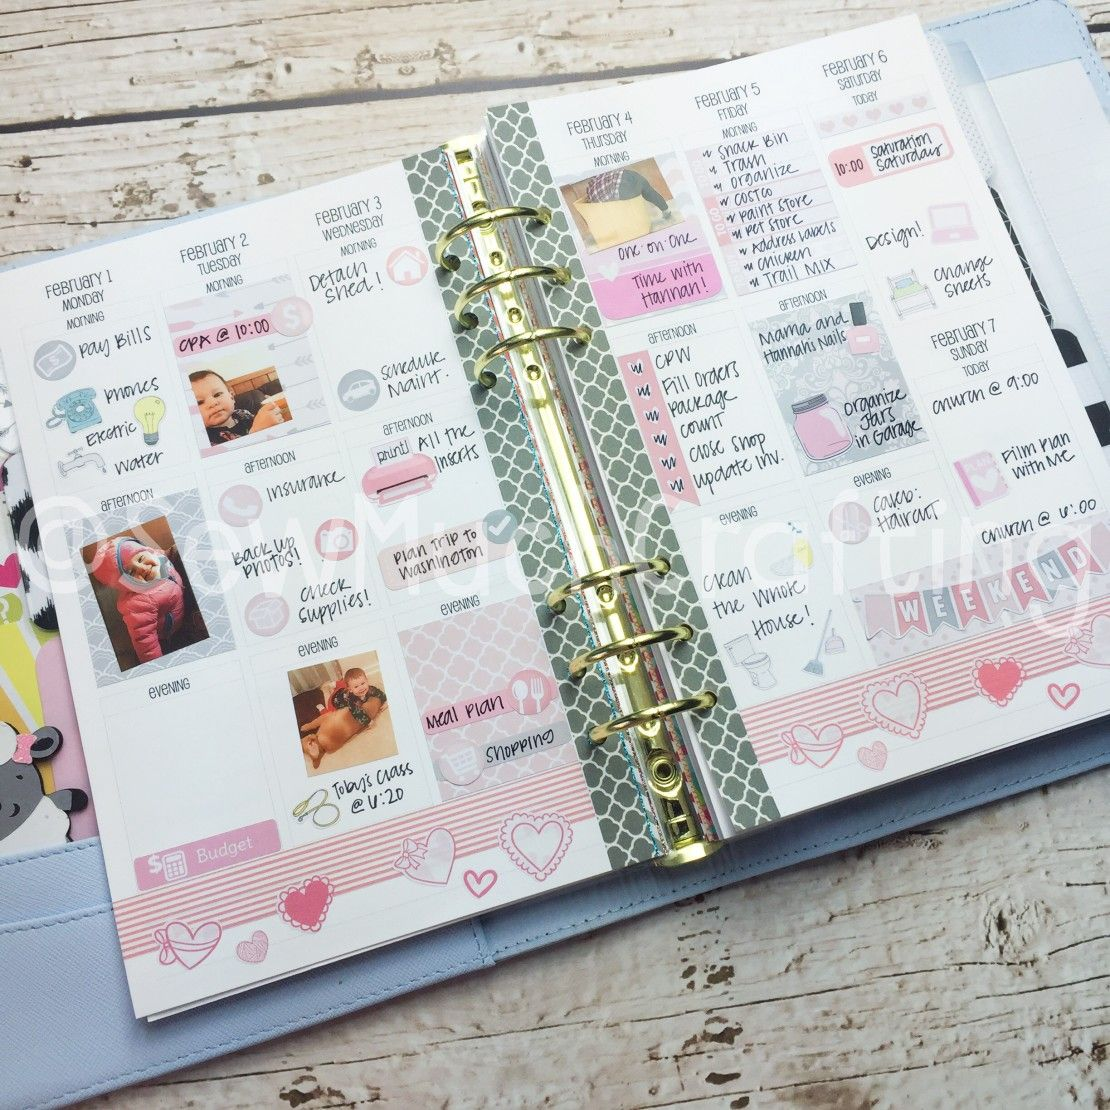 End of Week | February 7, 2016 | Sew Much Crafting